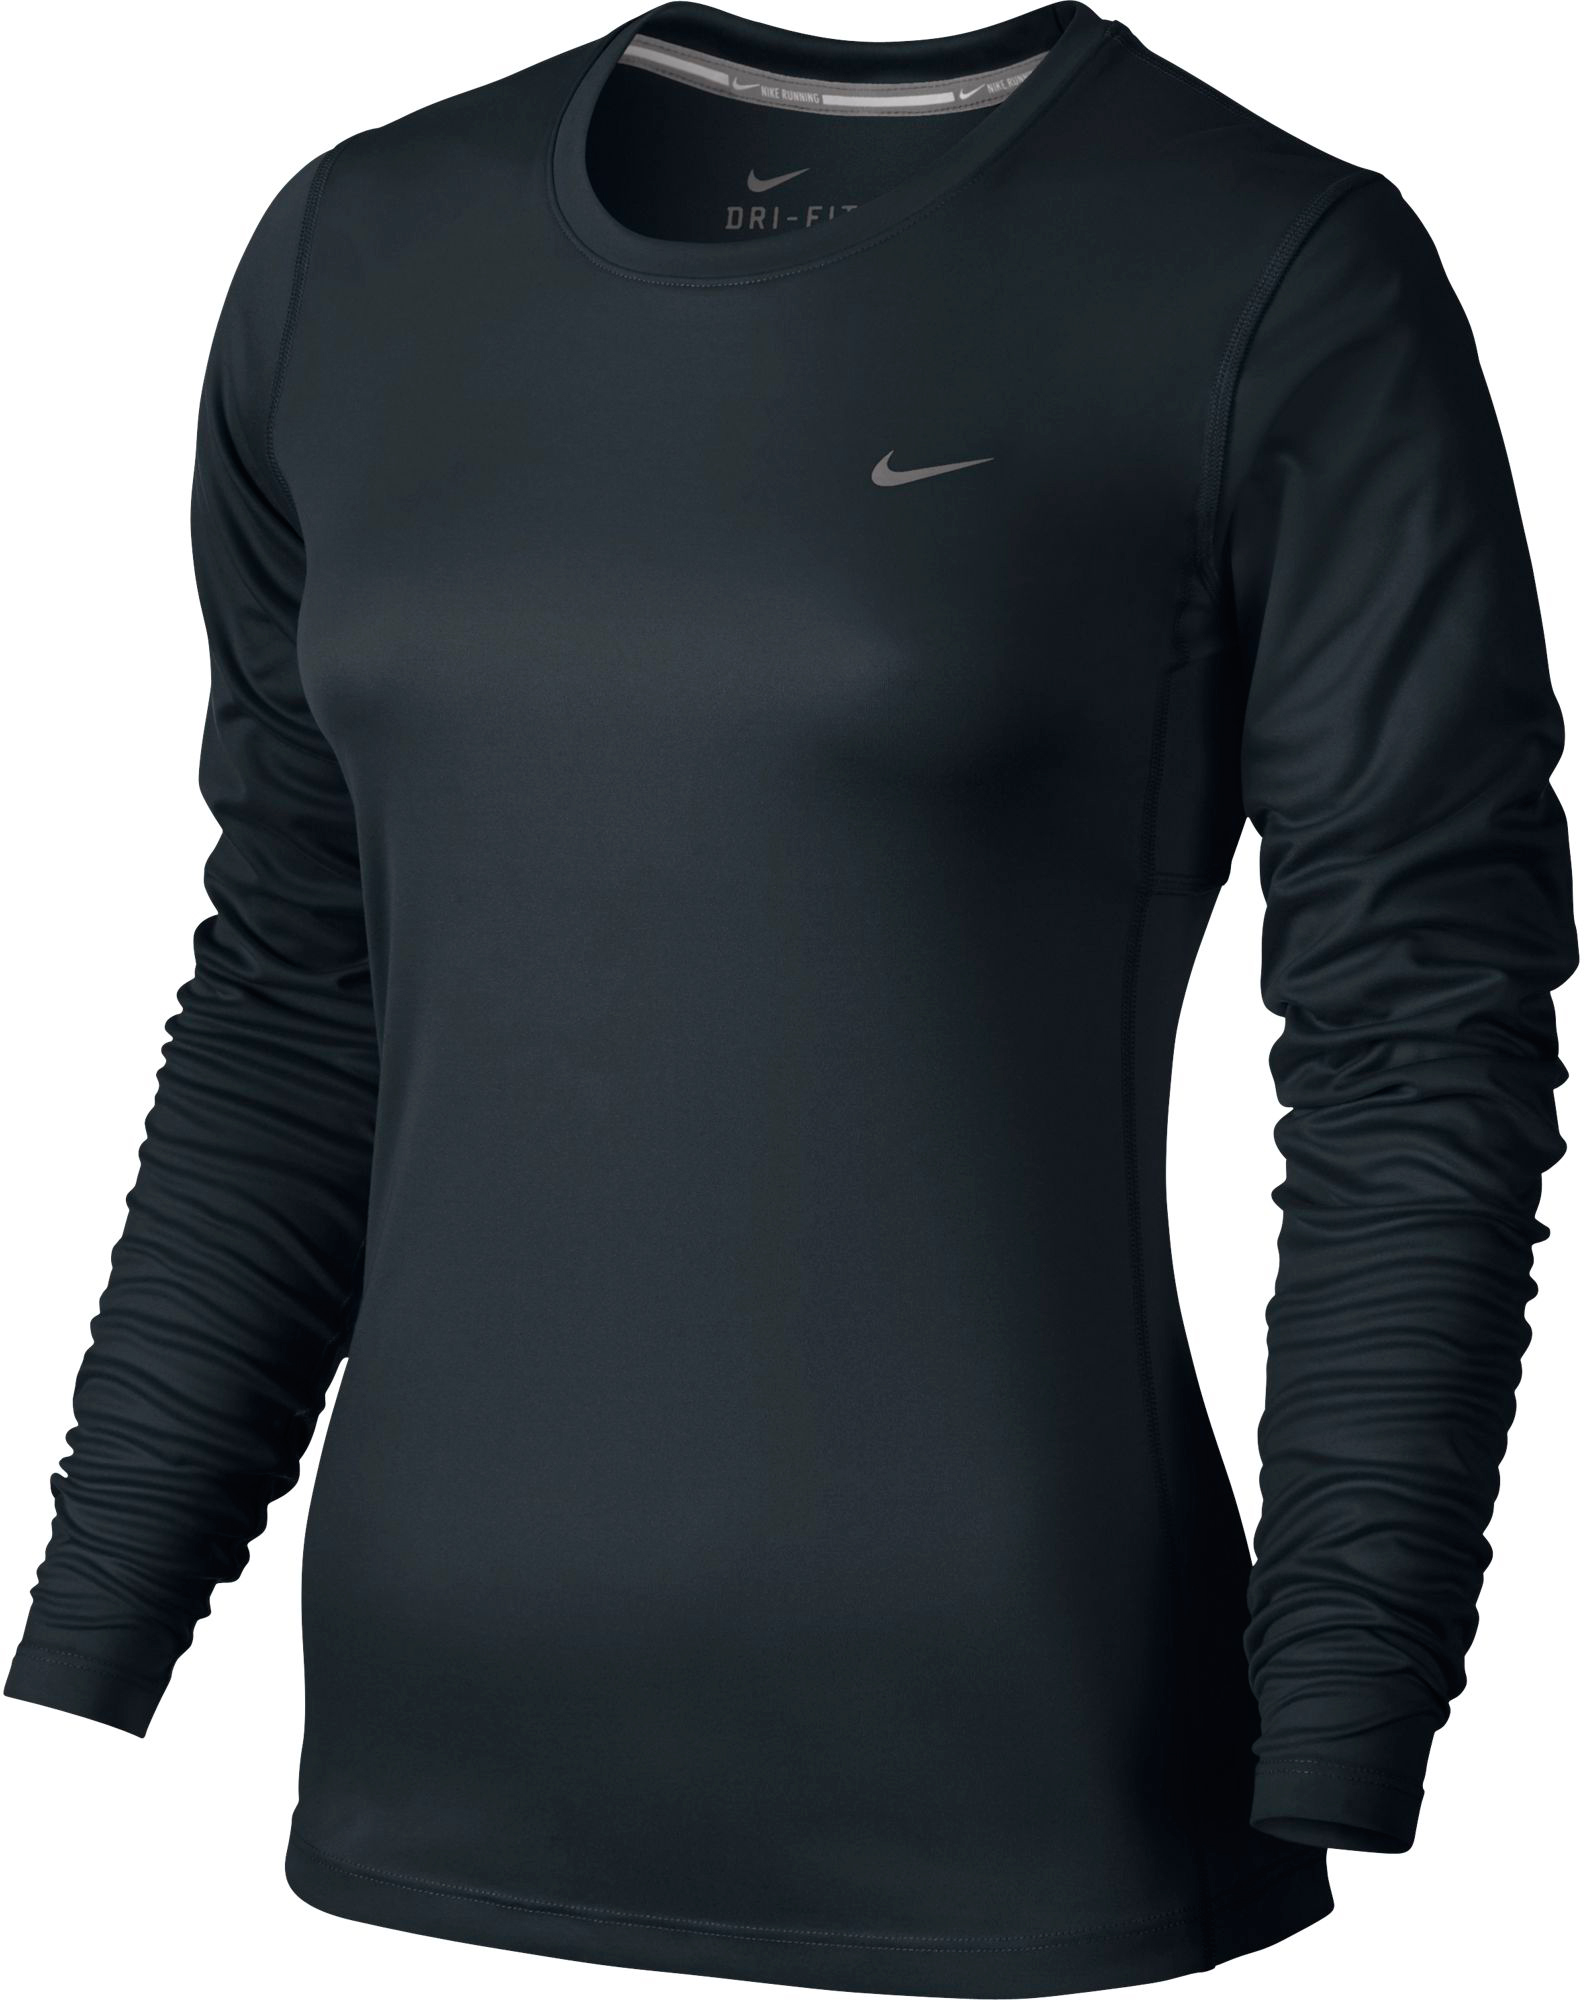 Nike Dri Fit Womens Shirts